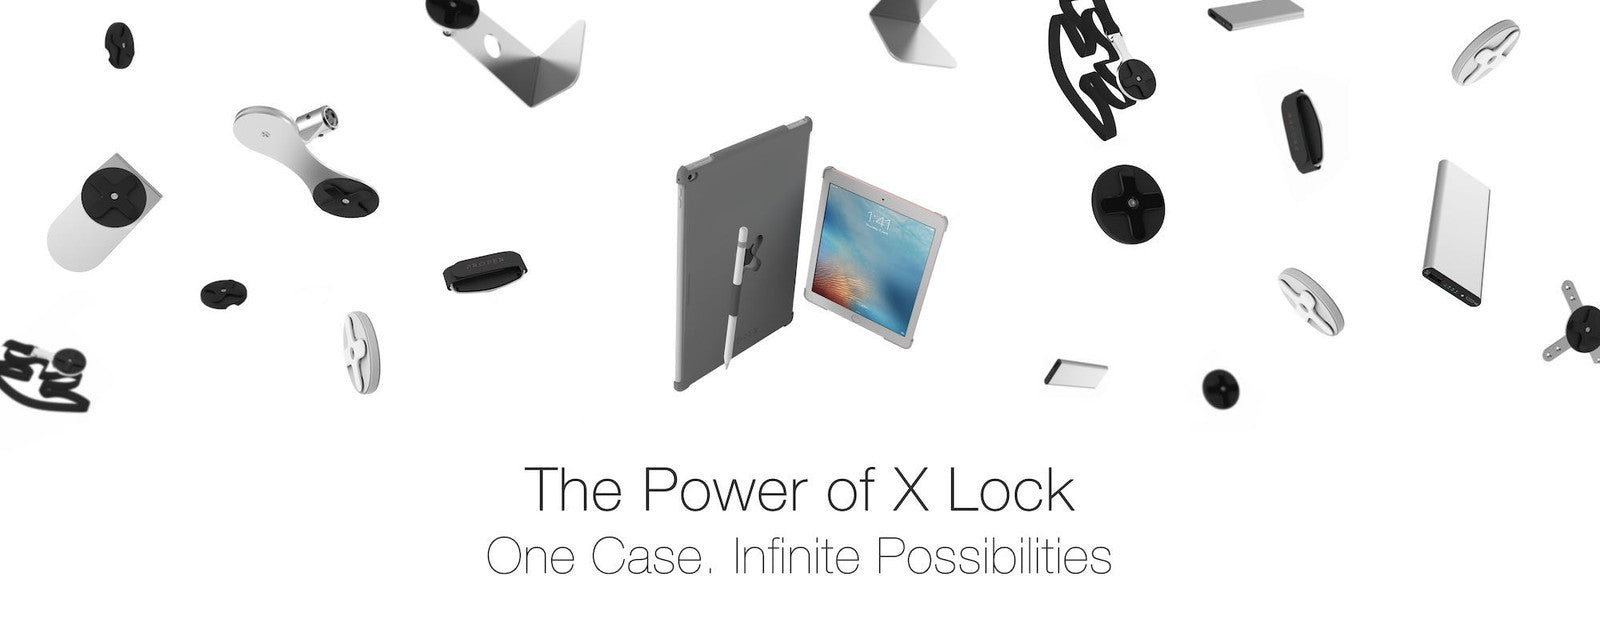 One Case. Infinite Possibilities